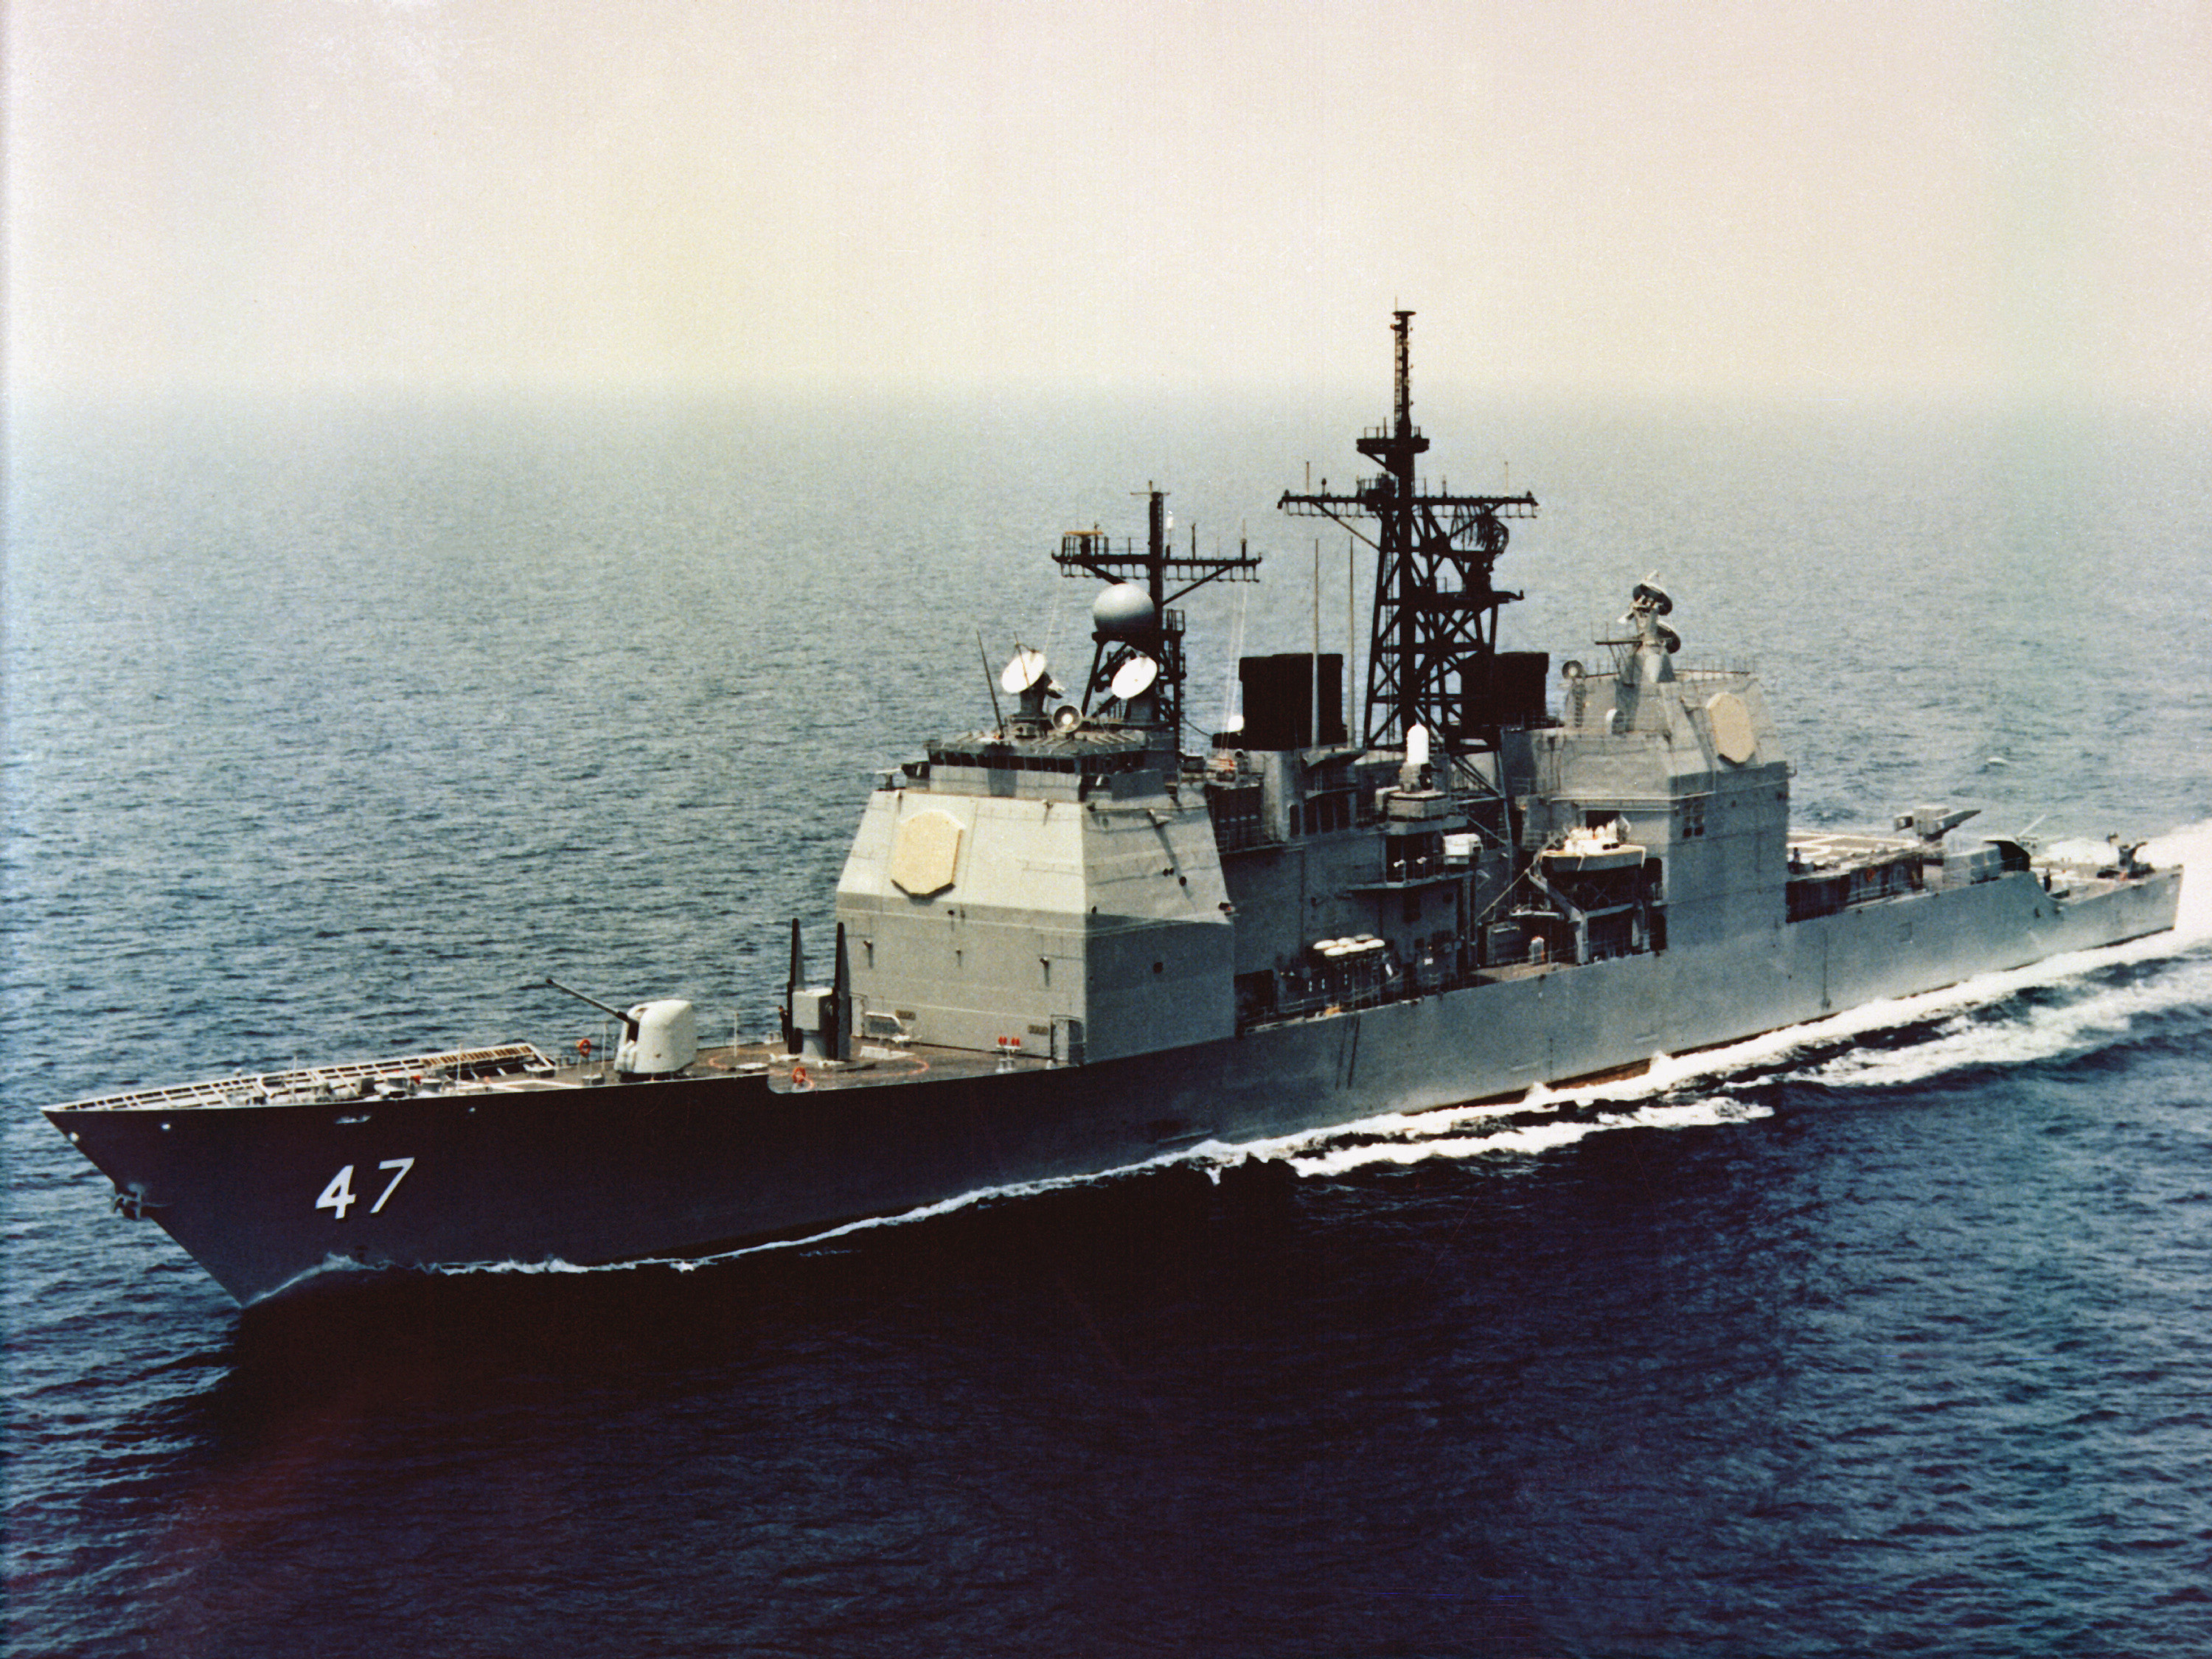 aerial_port_bow_view_of_uss_ticonderoga_cg-47_underway_during_sea_trials_may_1982_dn-sc-84-00168.jpg